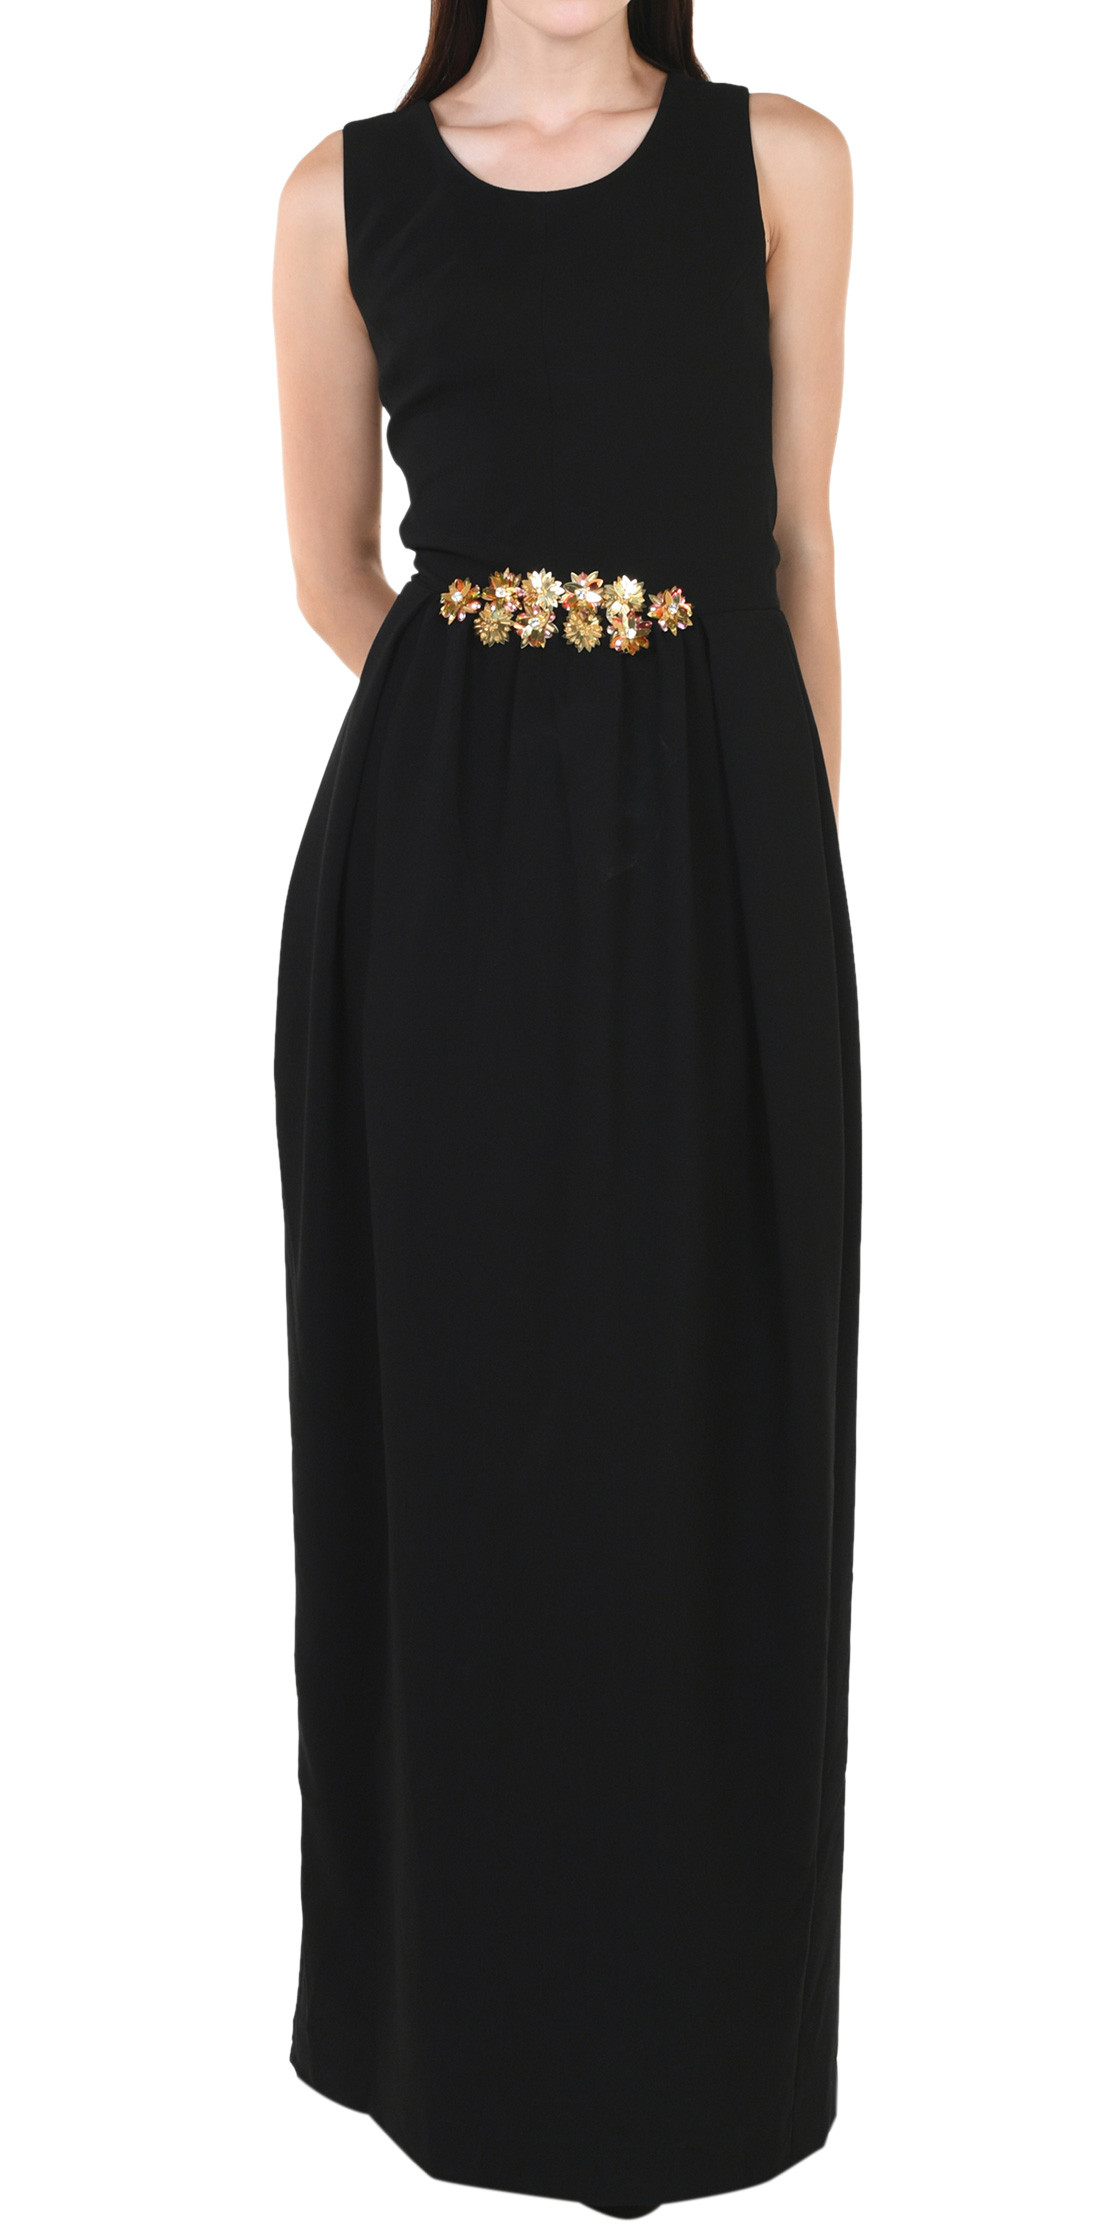 Tory Burch Round-Neck Gown | Evening Dress Rental | Lebanon Rent a ...